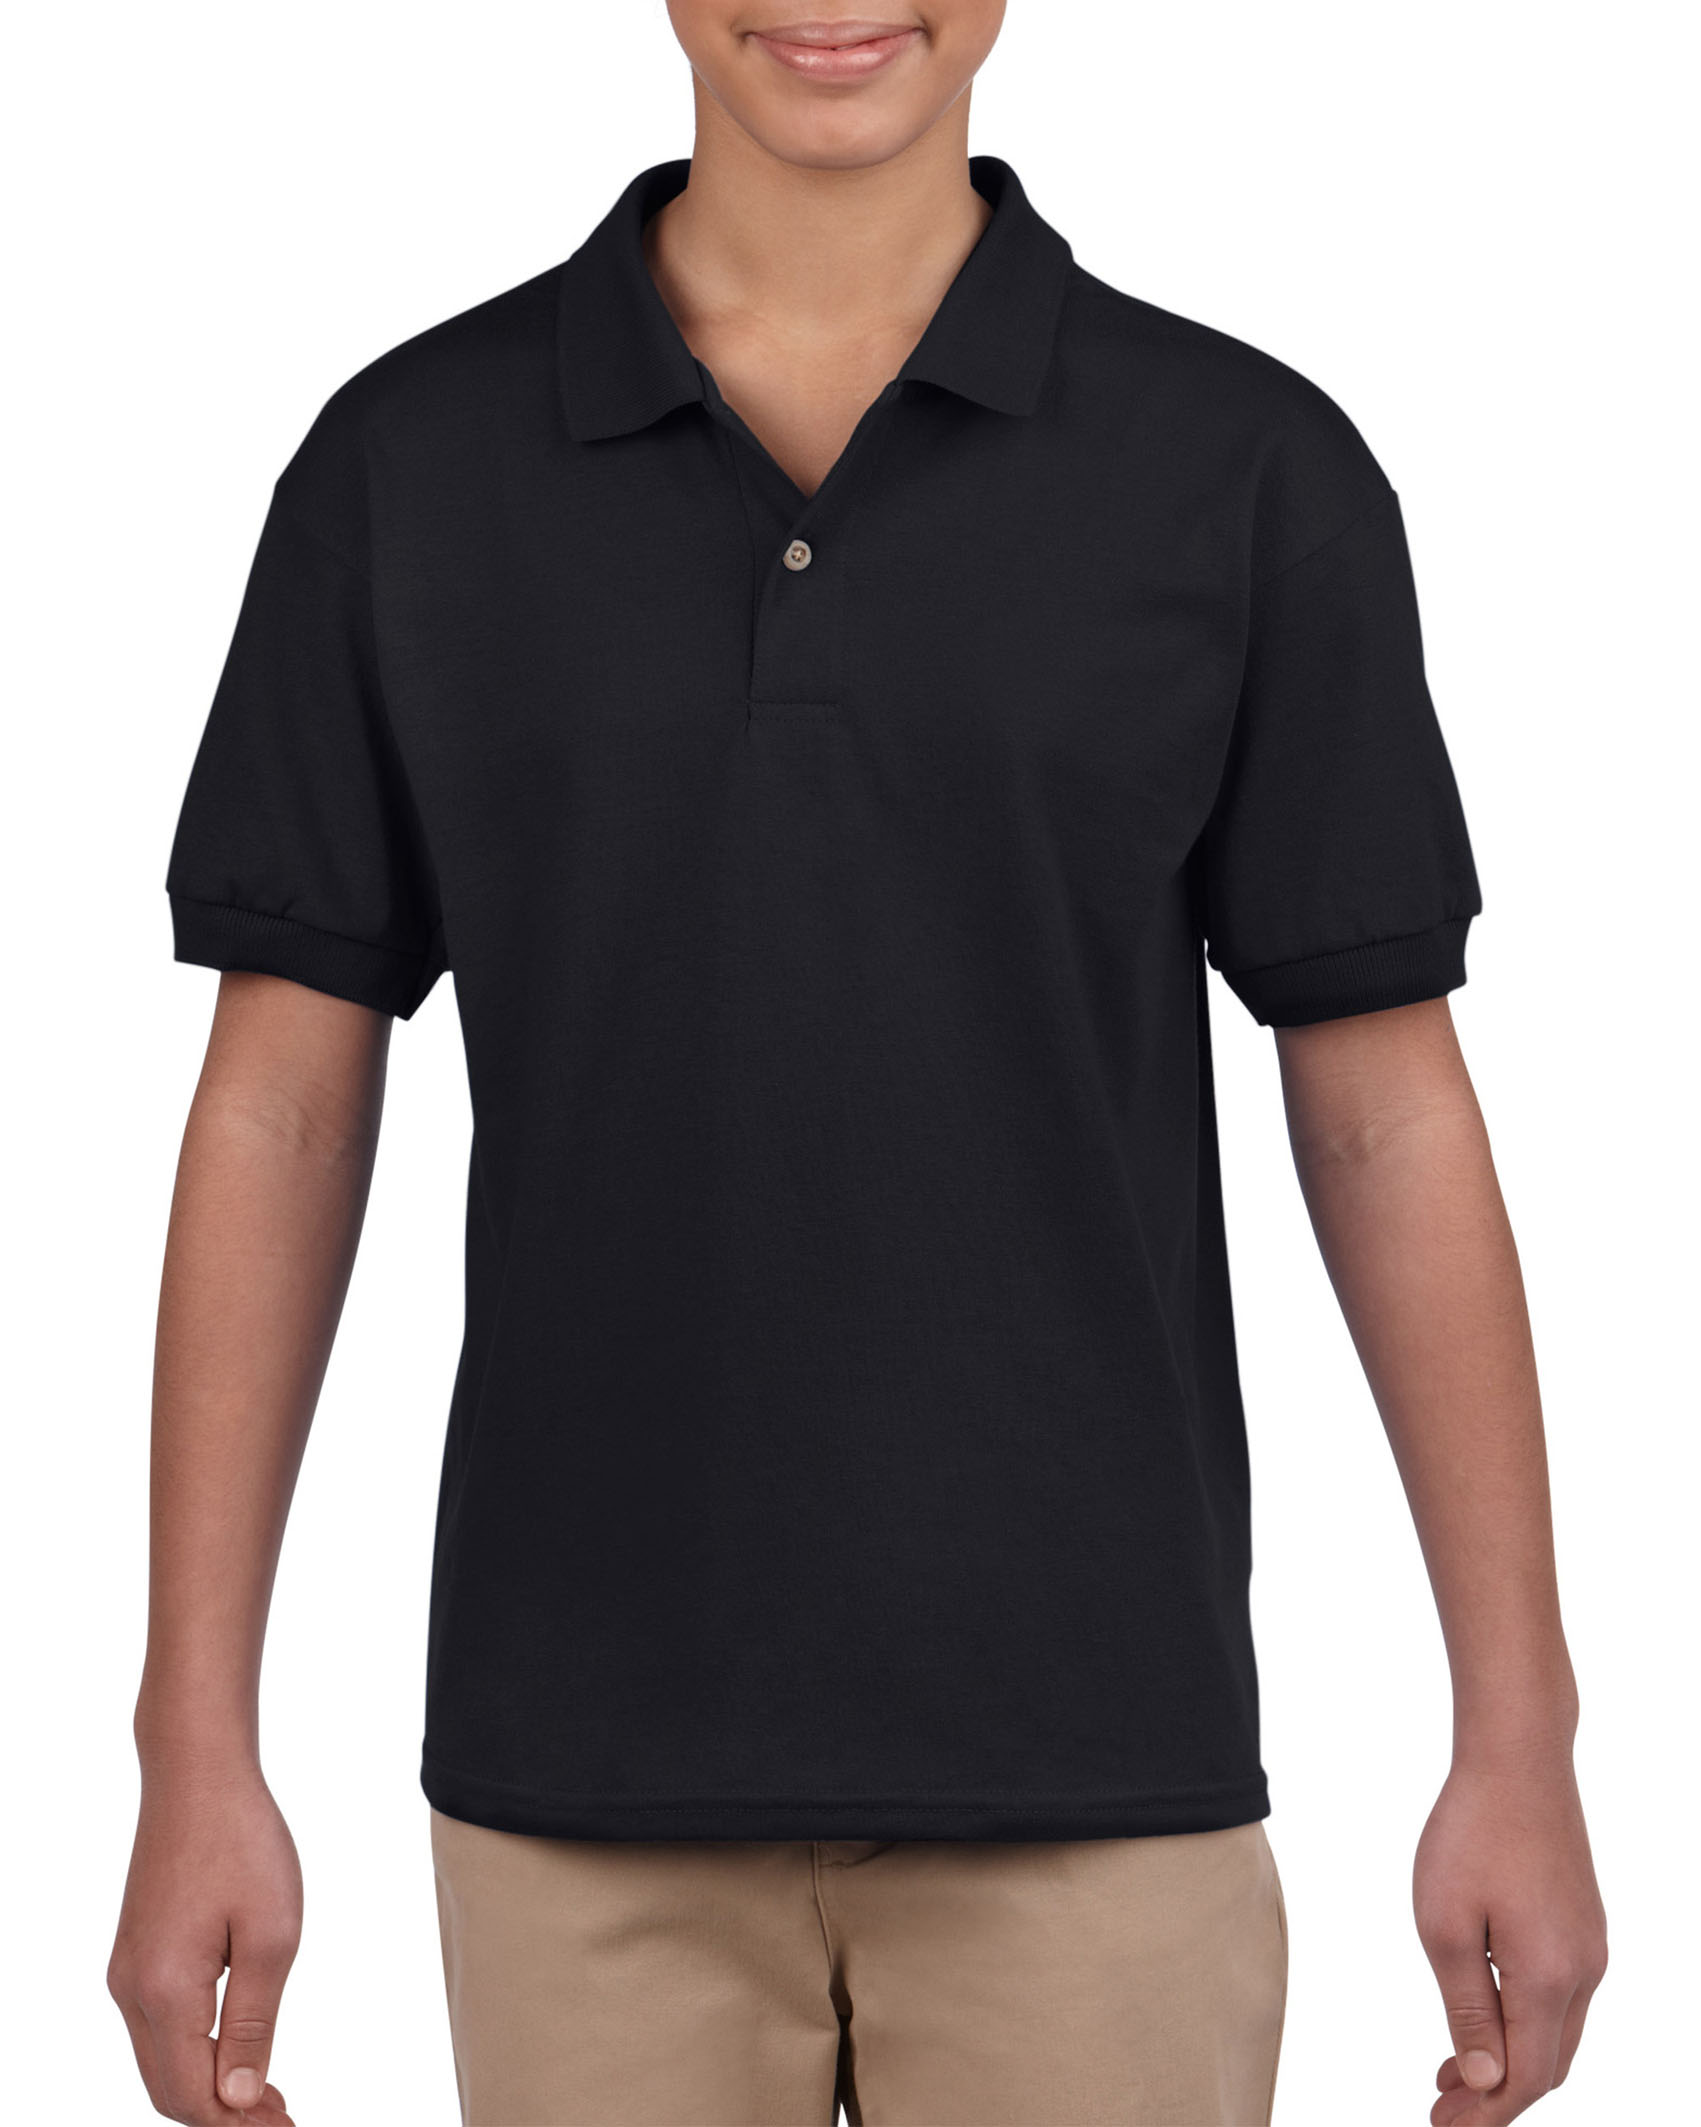 Gildan Polo Jersey Dryblend for kids